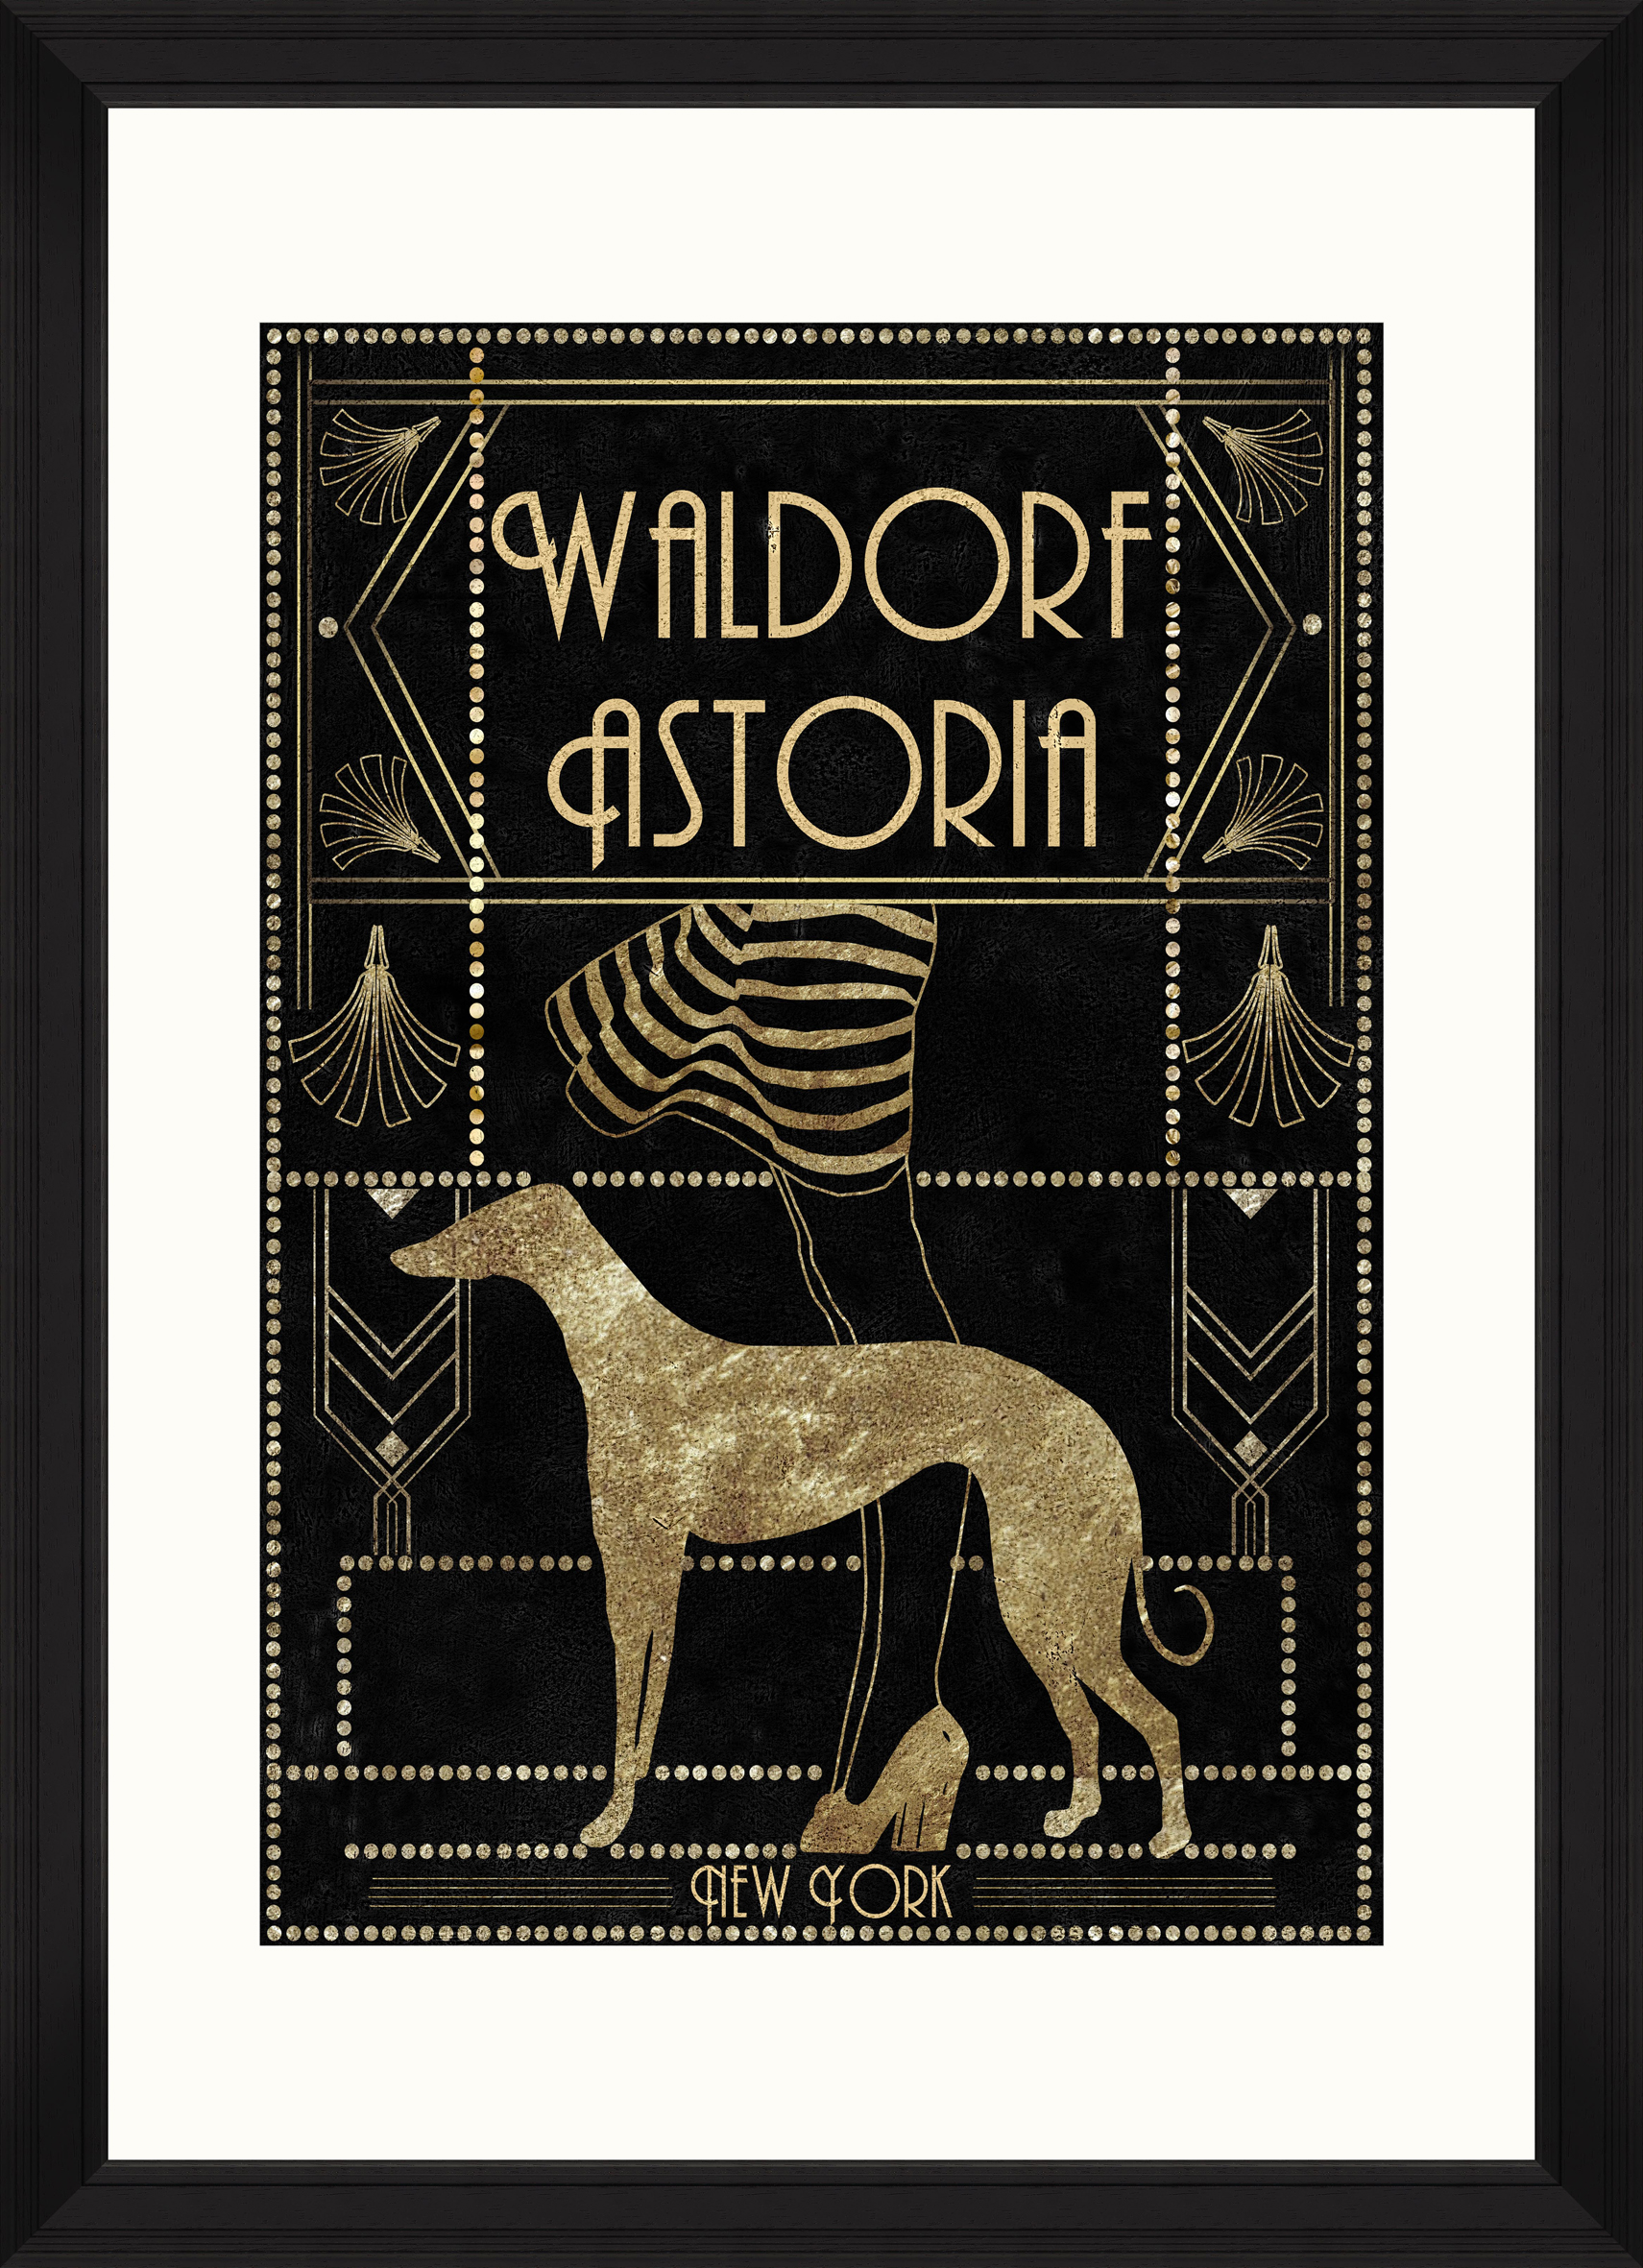 Waldorf Astoria Framed Print